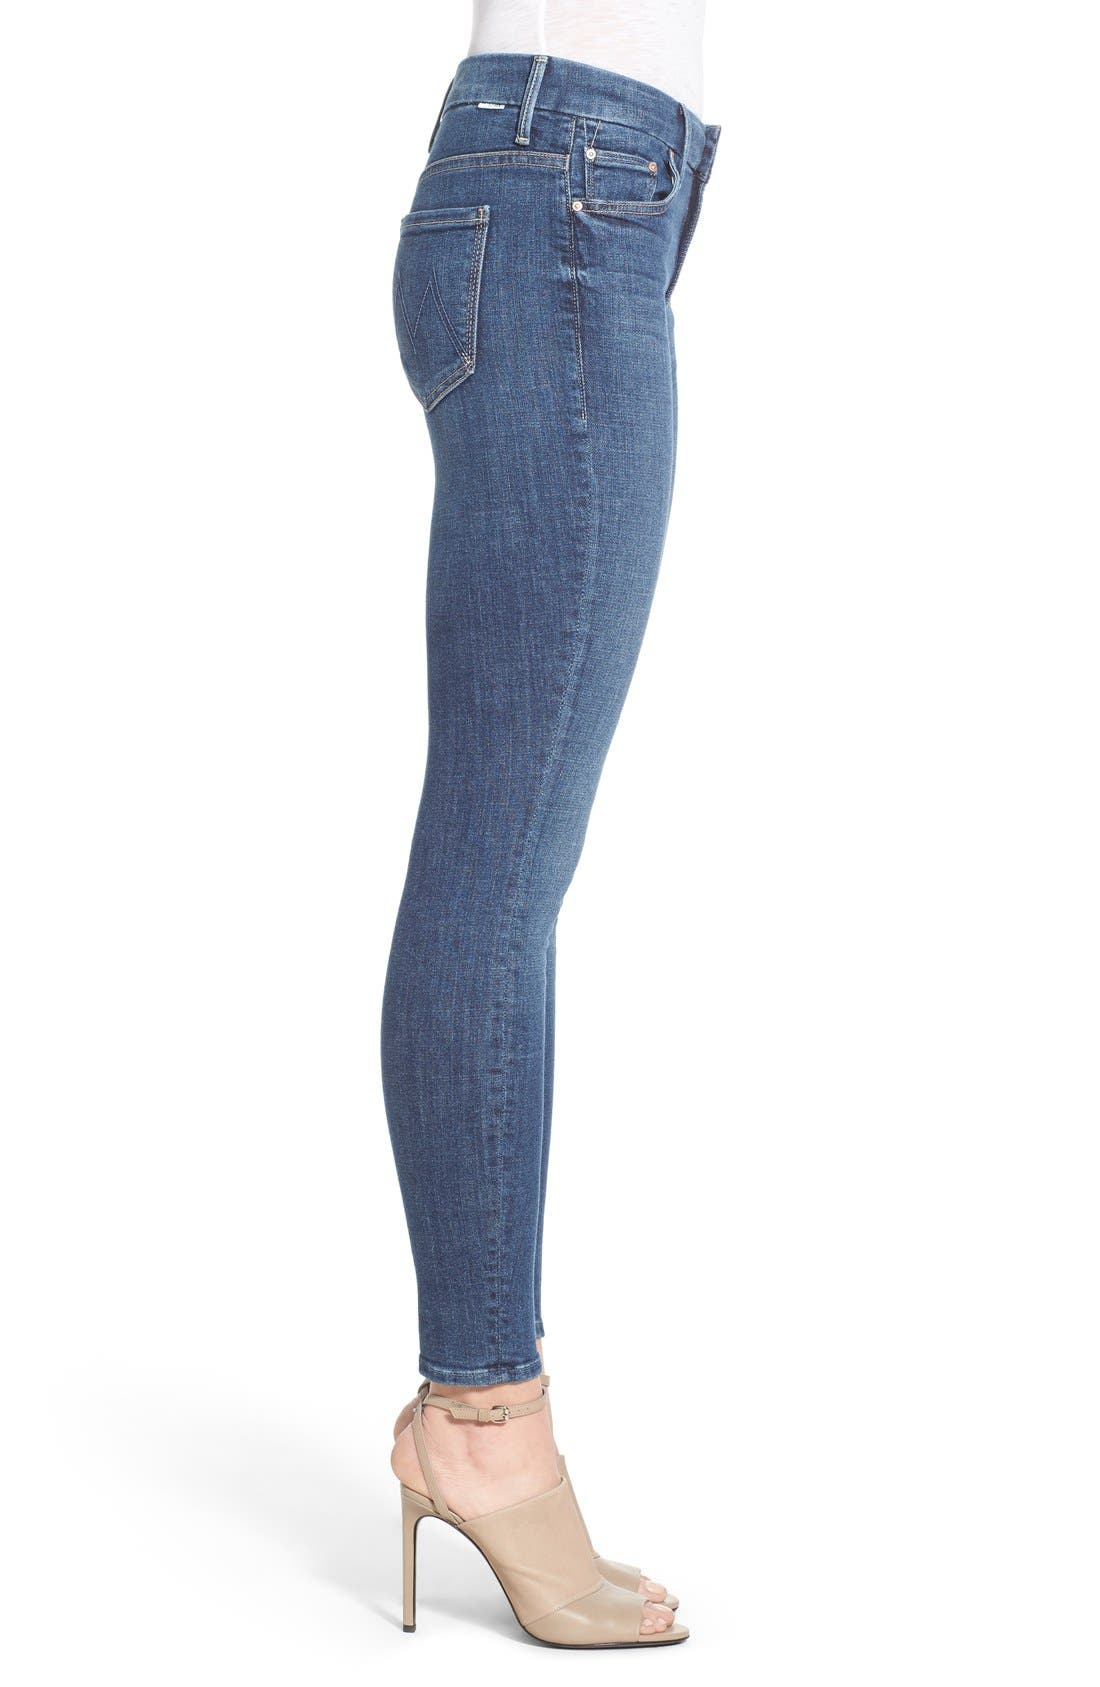 Alternate Image 3  - MOTHER 'The Looker' High Rise Skinny Jeans (Girl Crush)